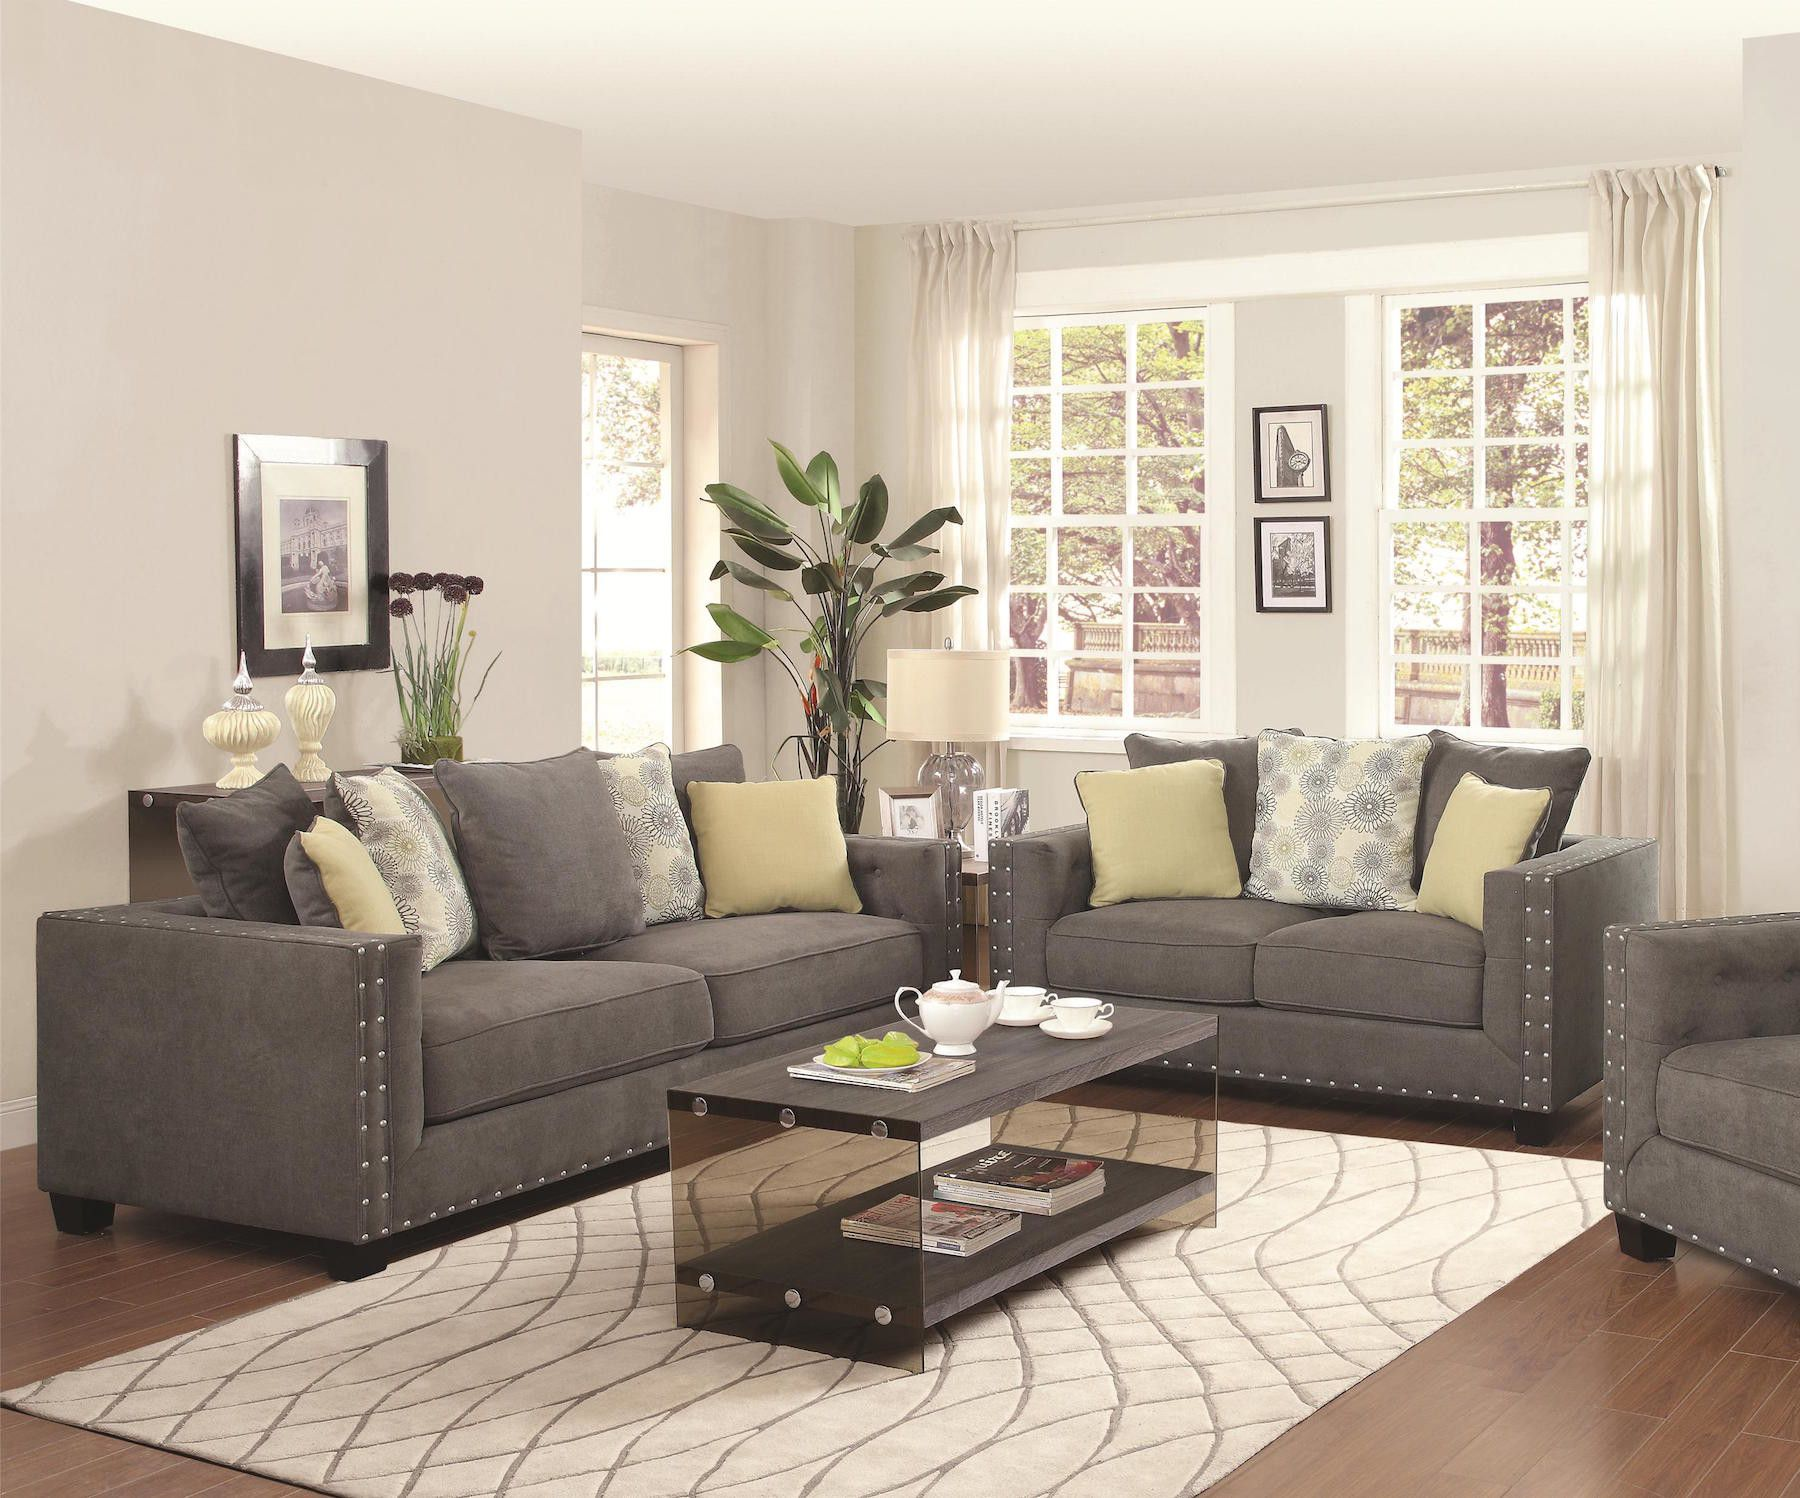 Mid century Modern Design Grey Living Room Collection 1 Sofa 1